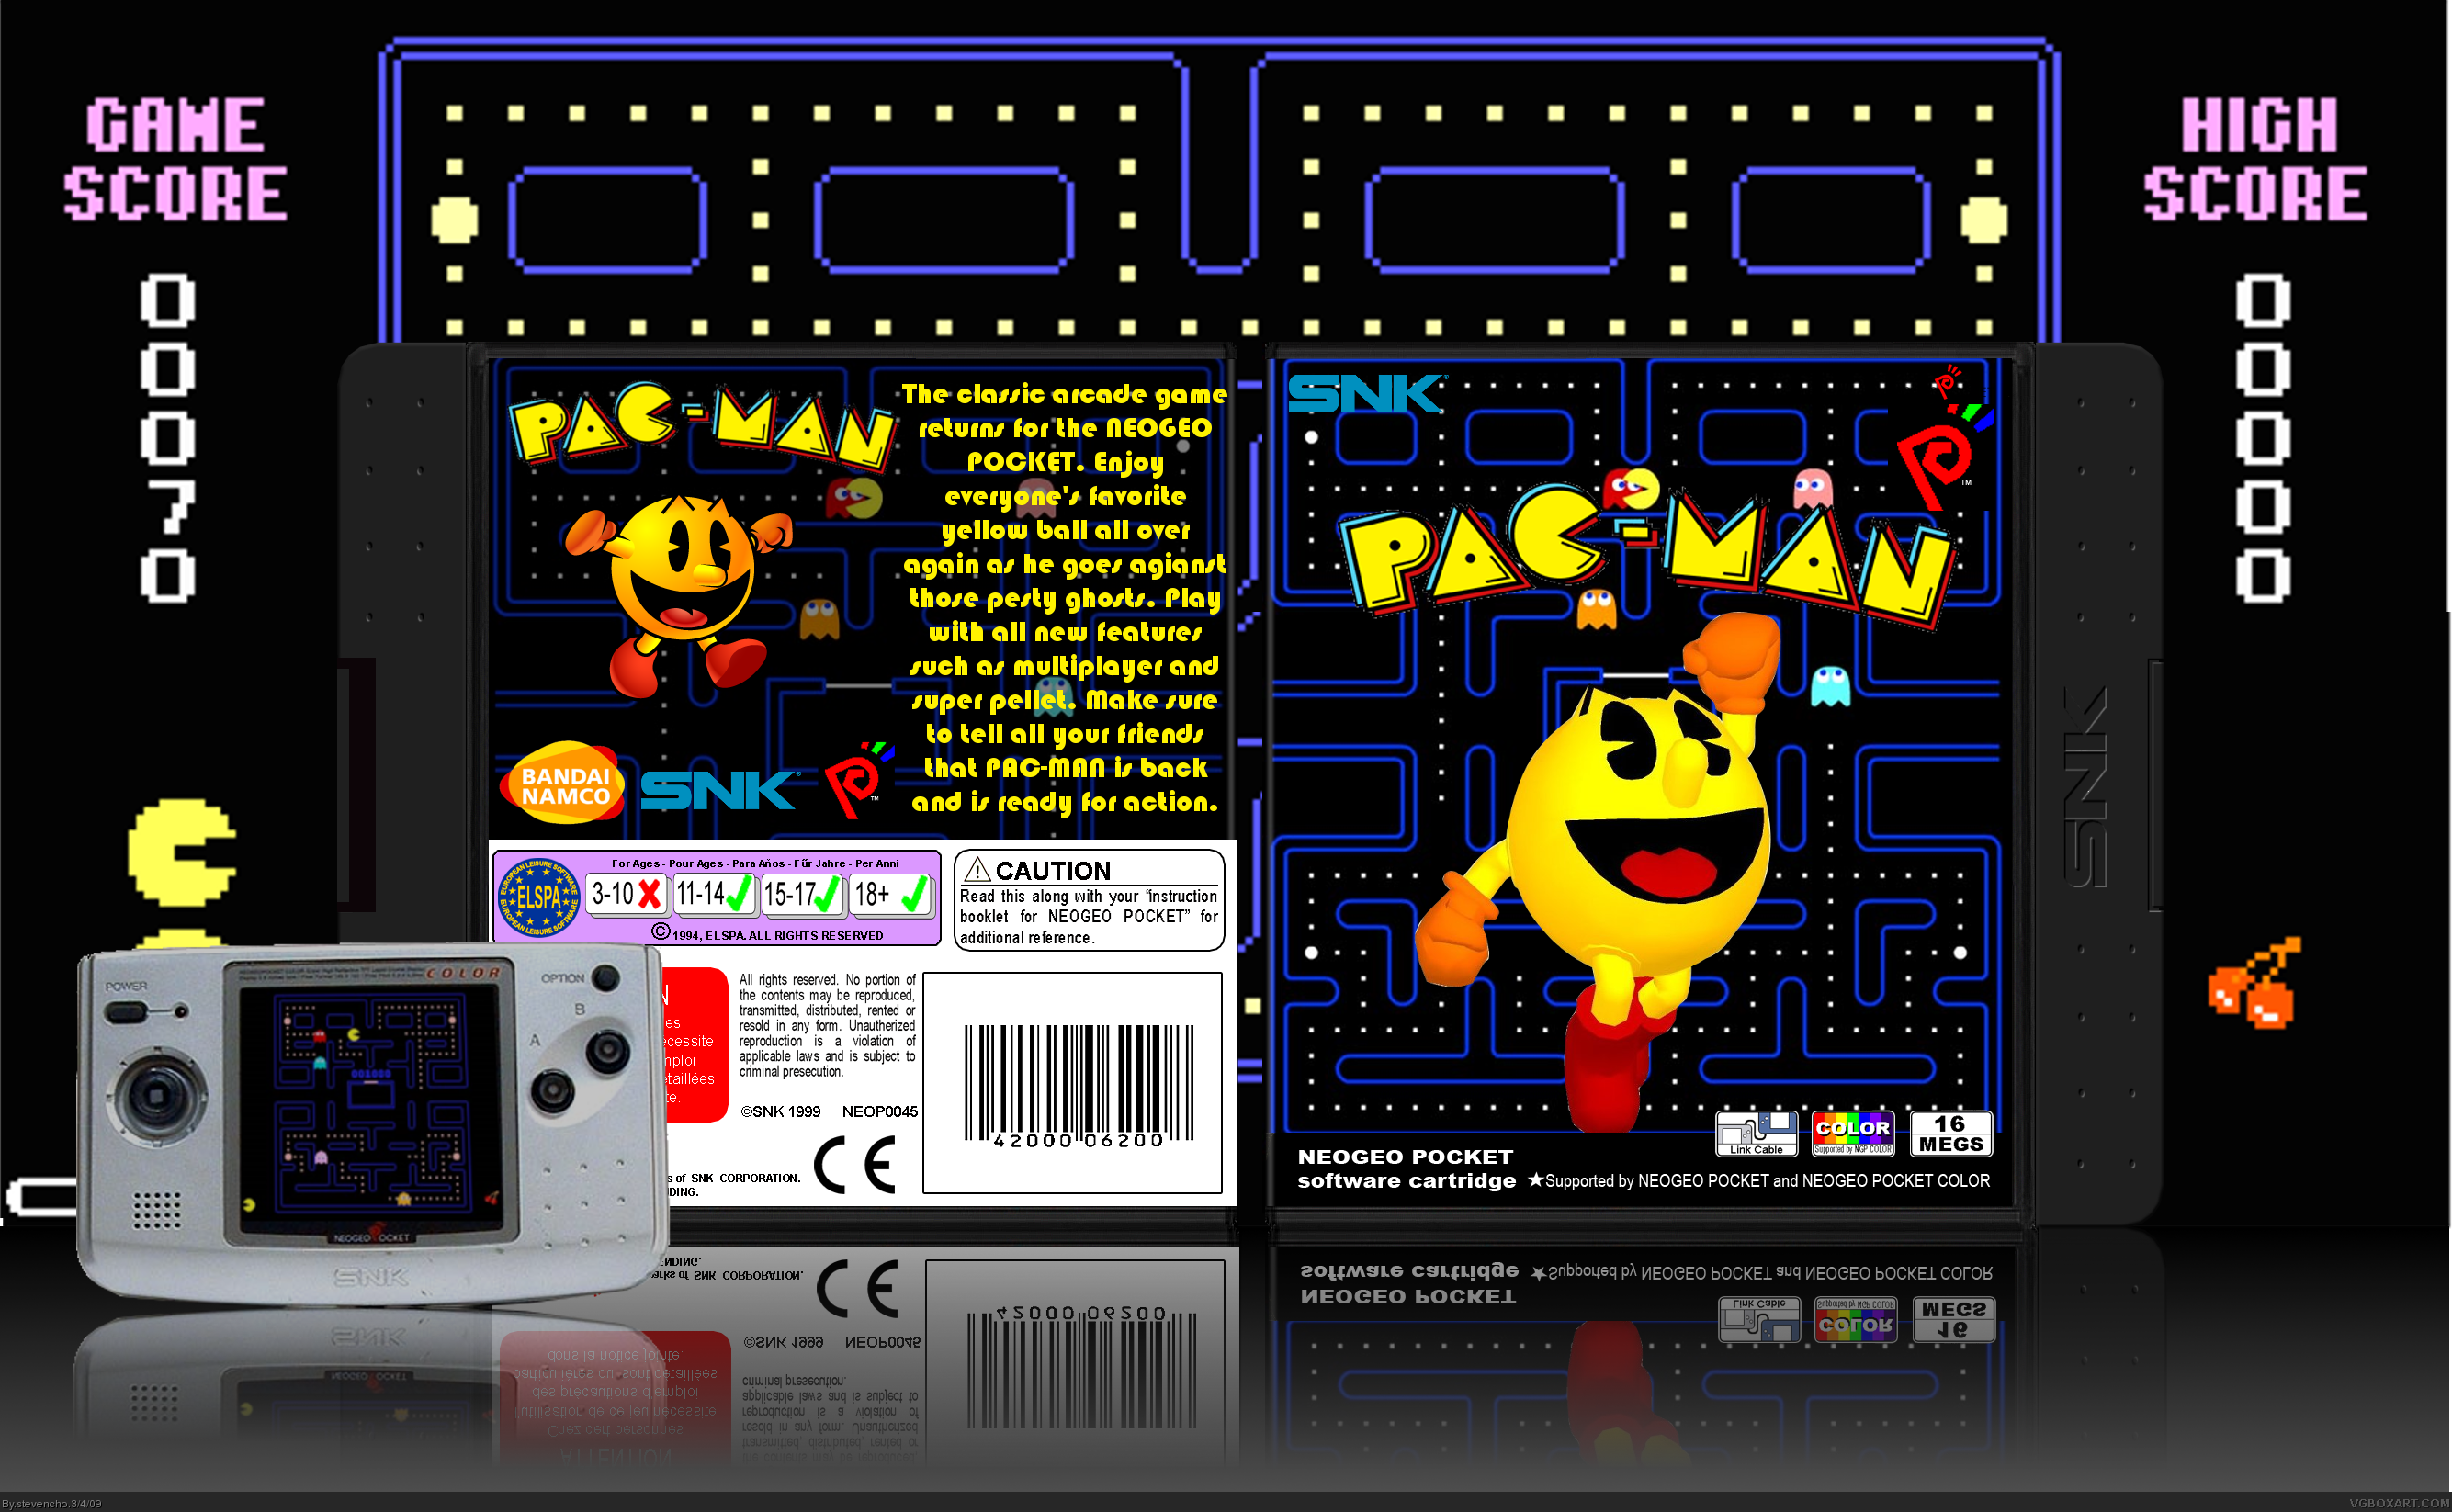 PAC-MAN box cover